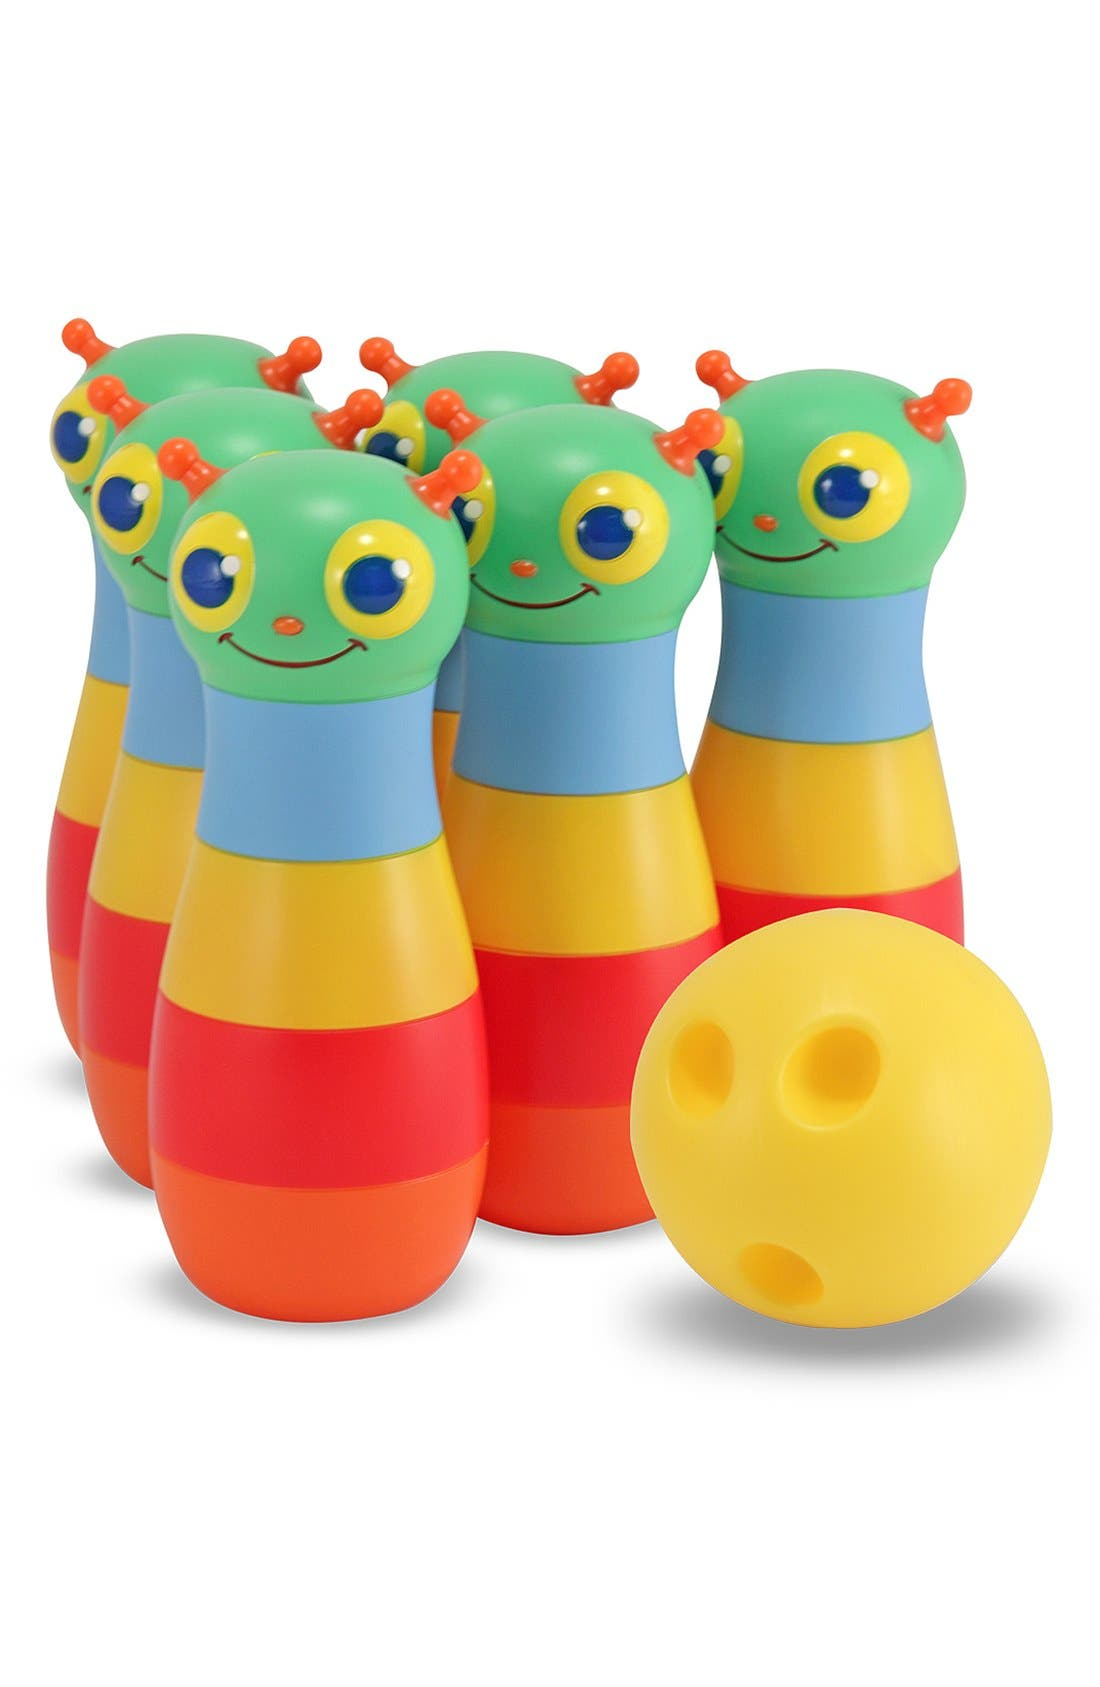 Melissa & Doug 'Happy Giddy' Bowling Set